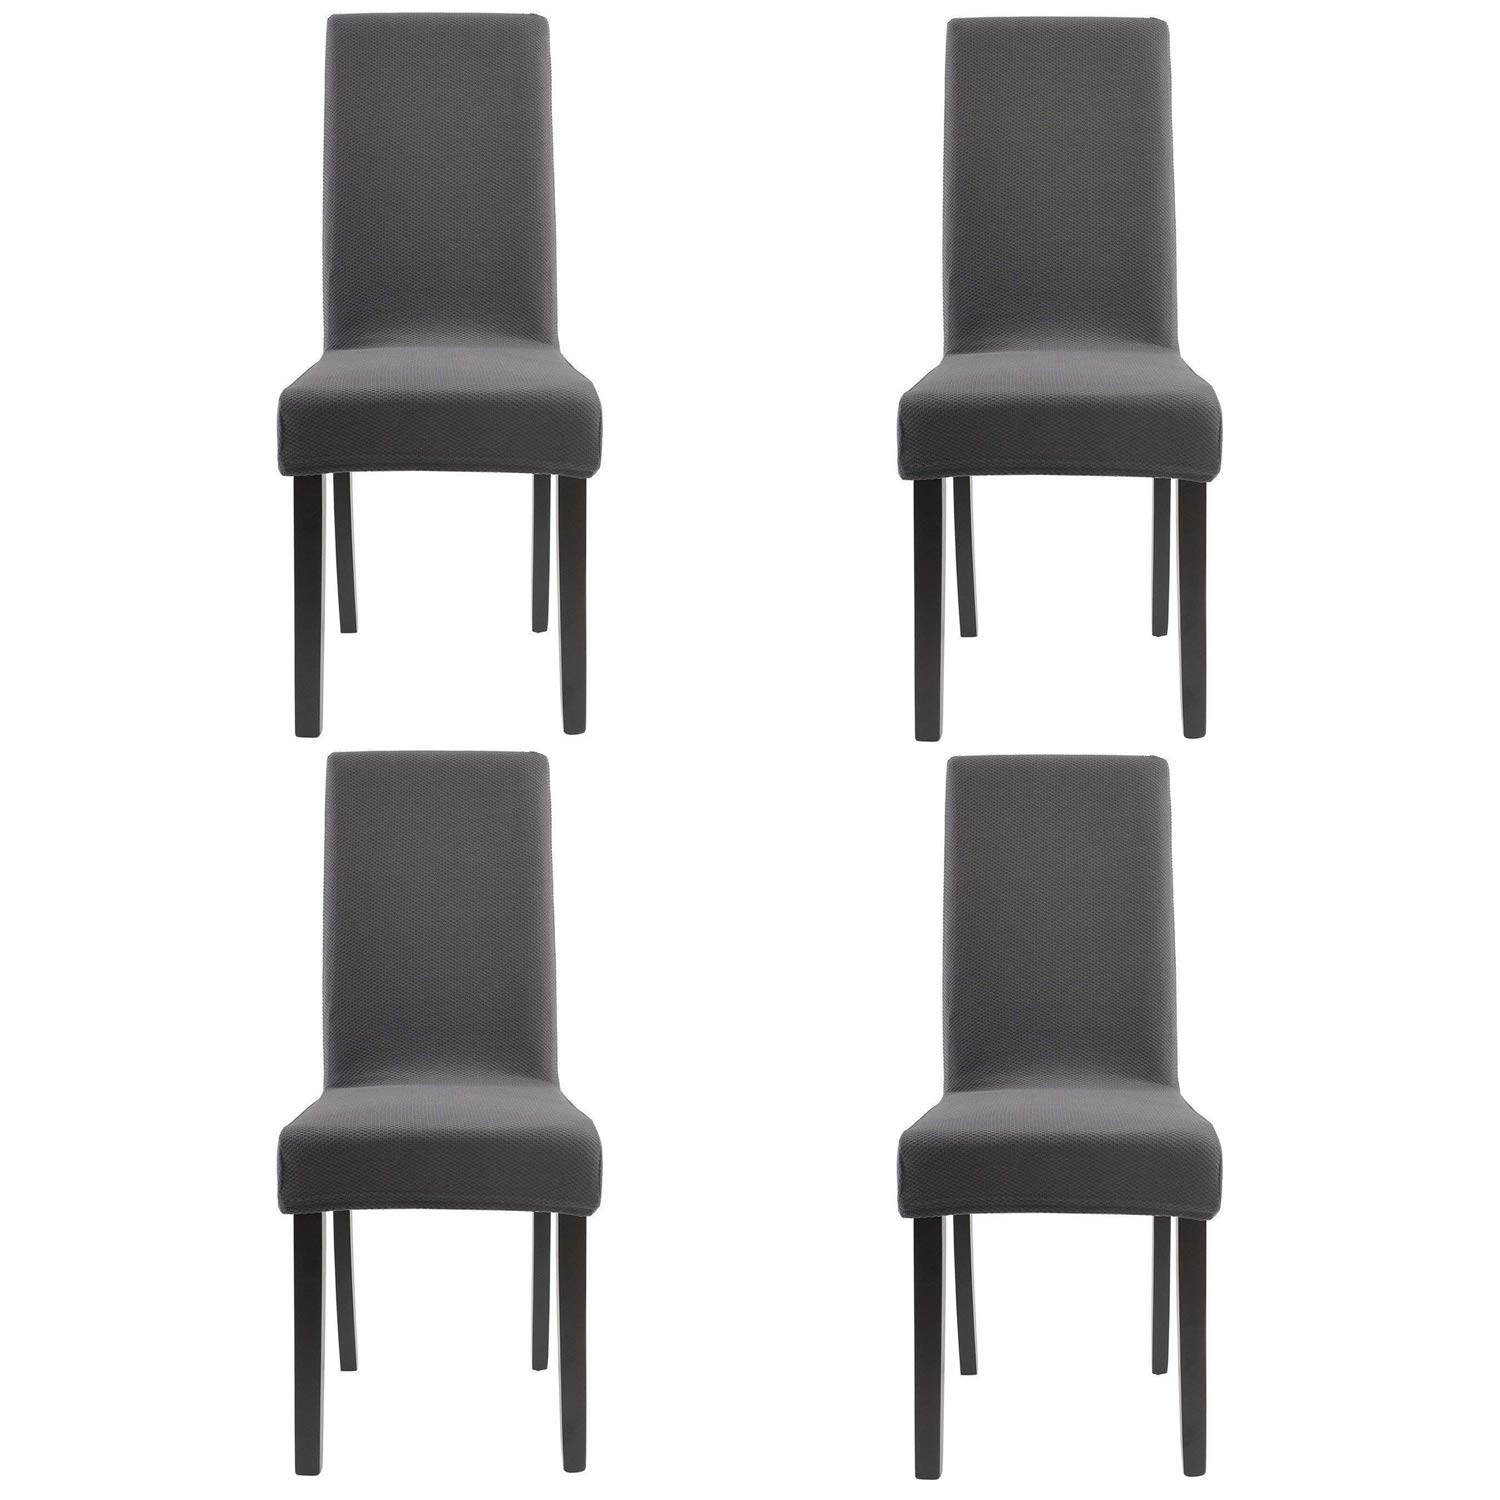 Homluxe Knit Spandex Stretch Dining Room Chair Slipcovers (4, Gray Knit)